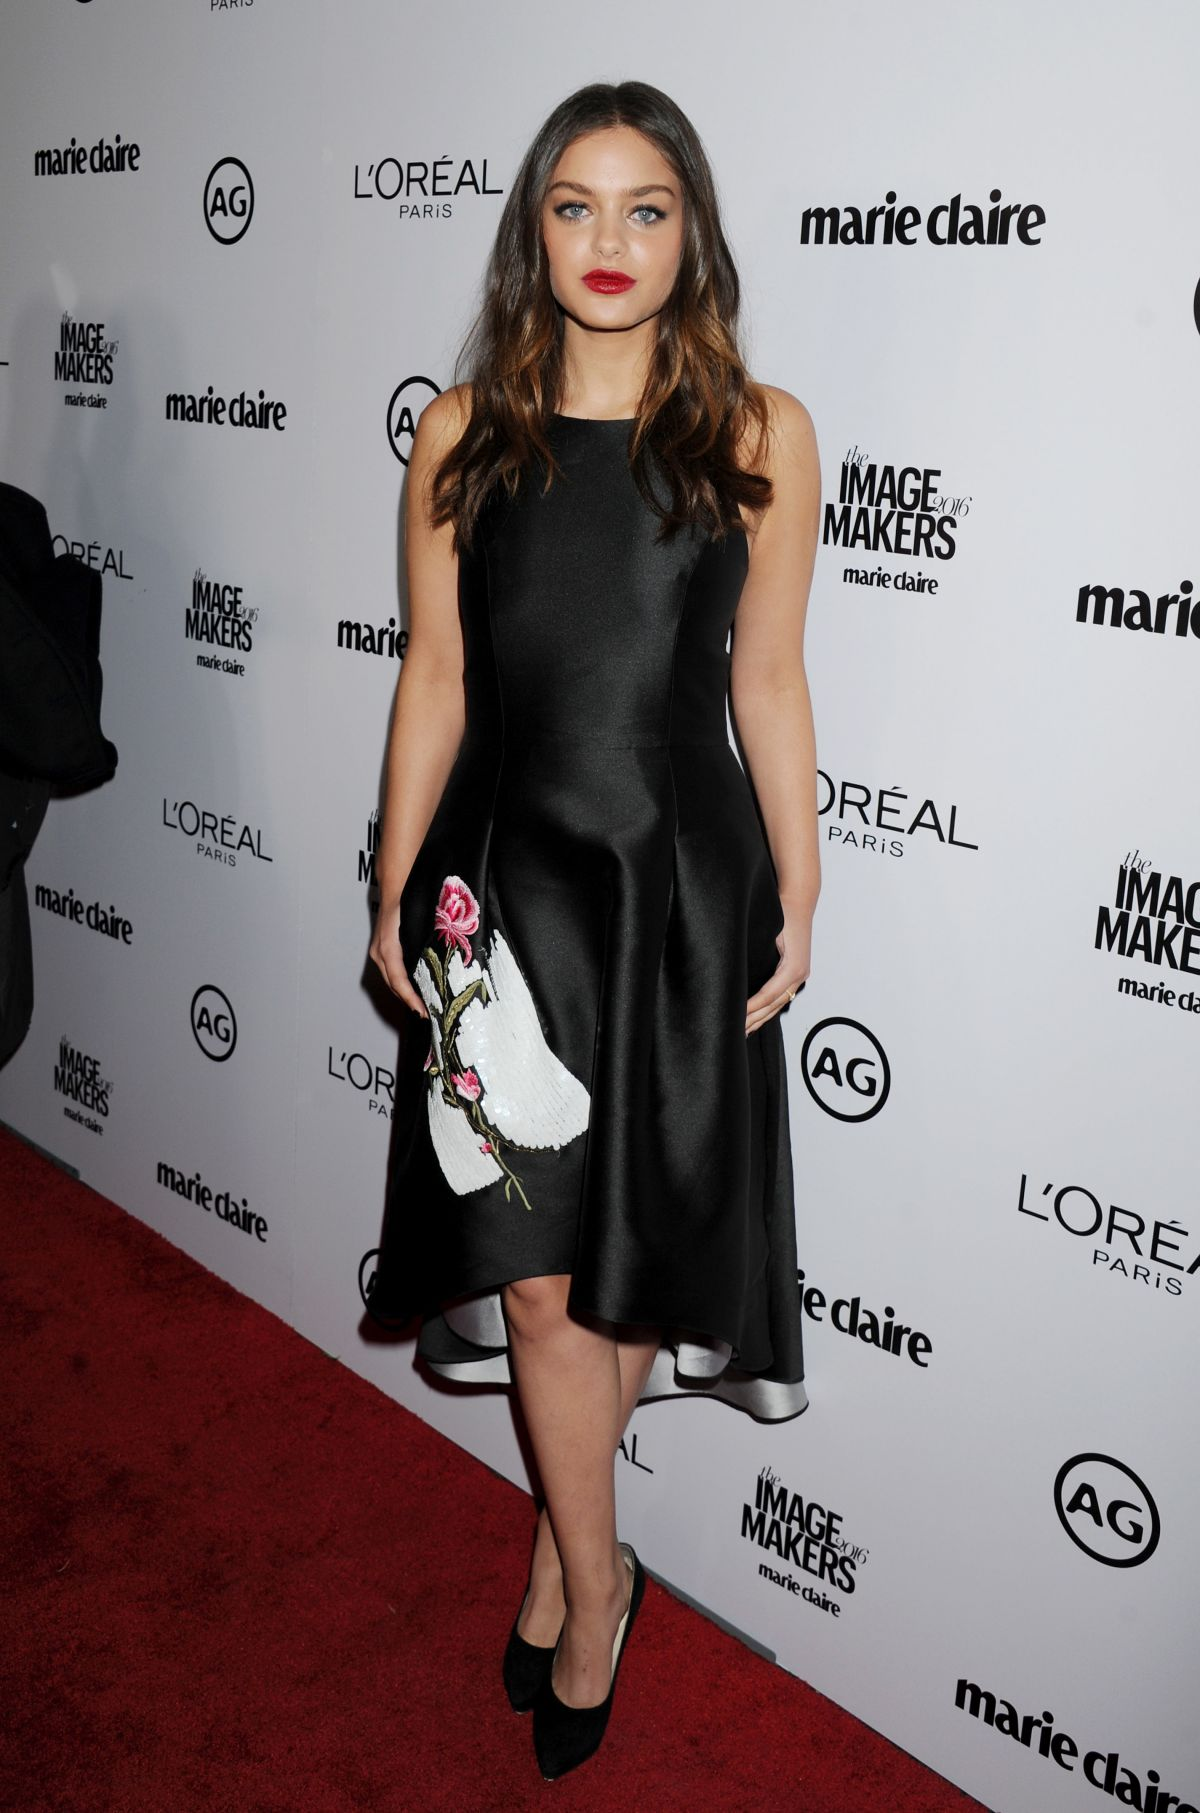 Odeya Rush At Inaugural Image Maker Awards In LA